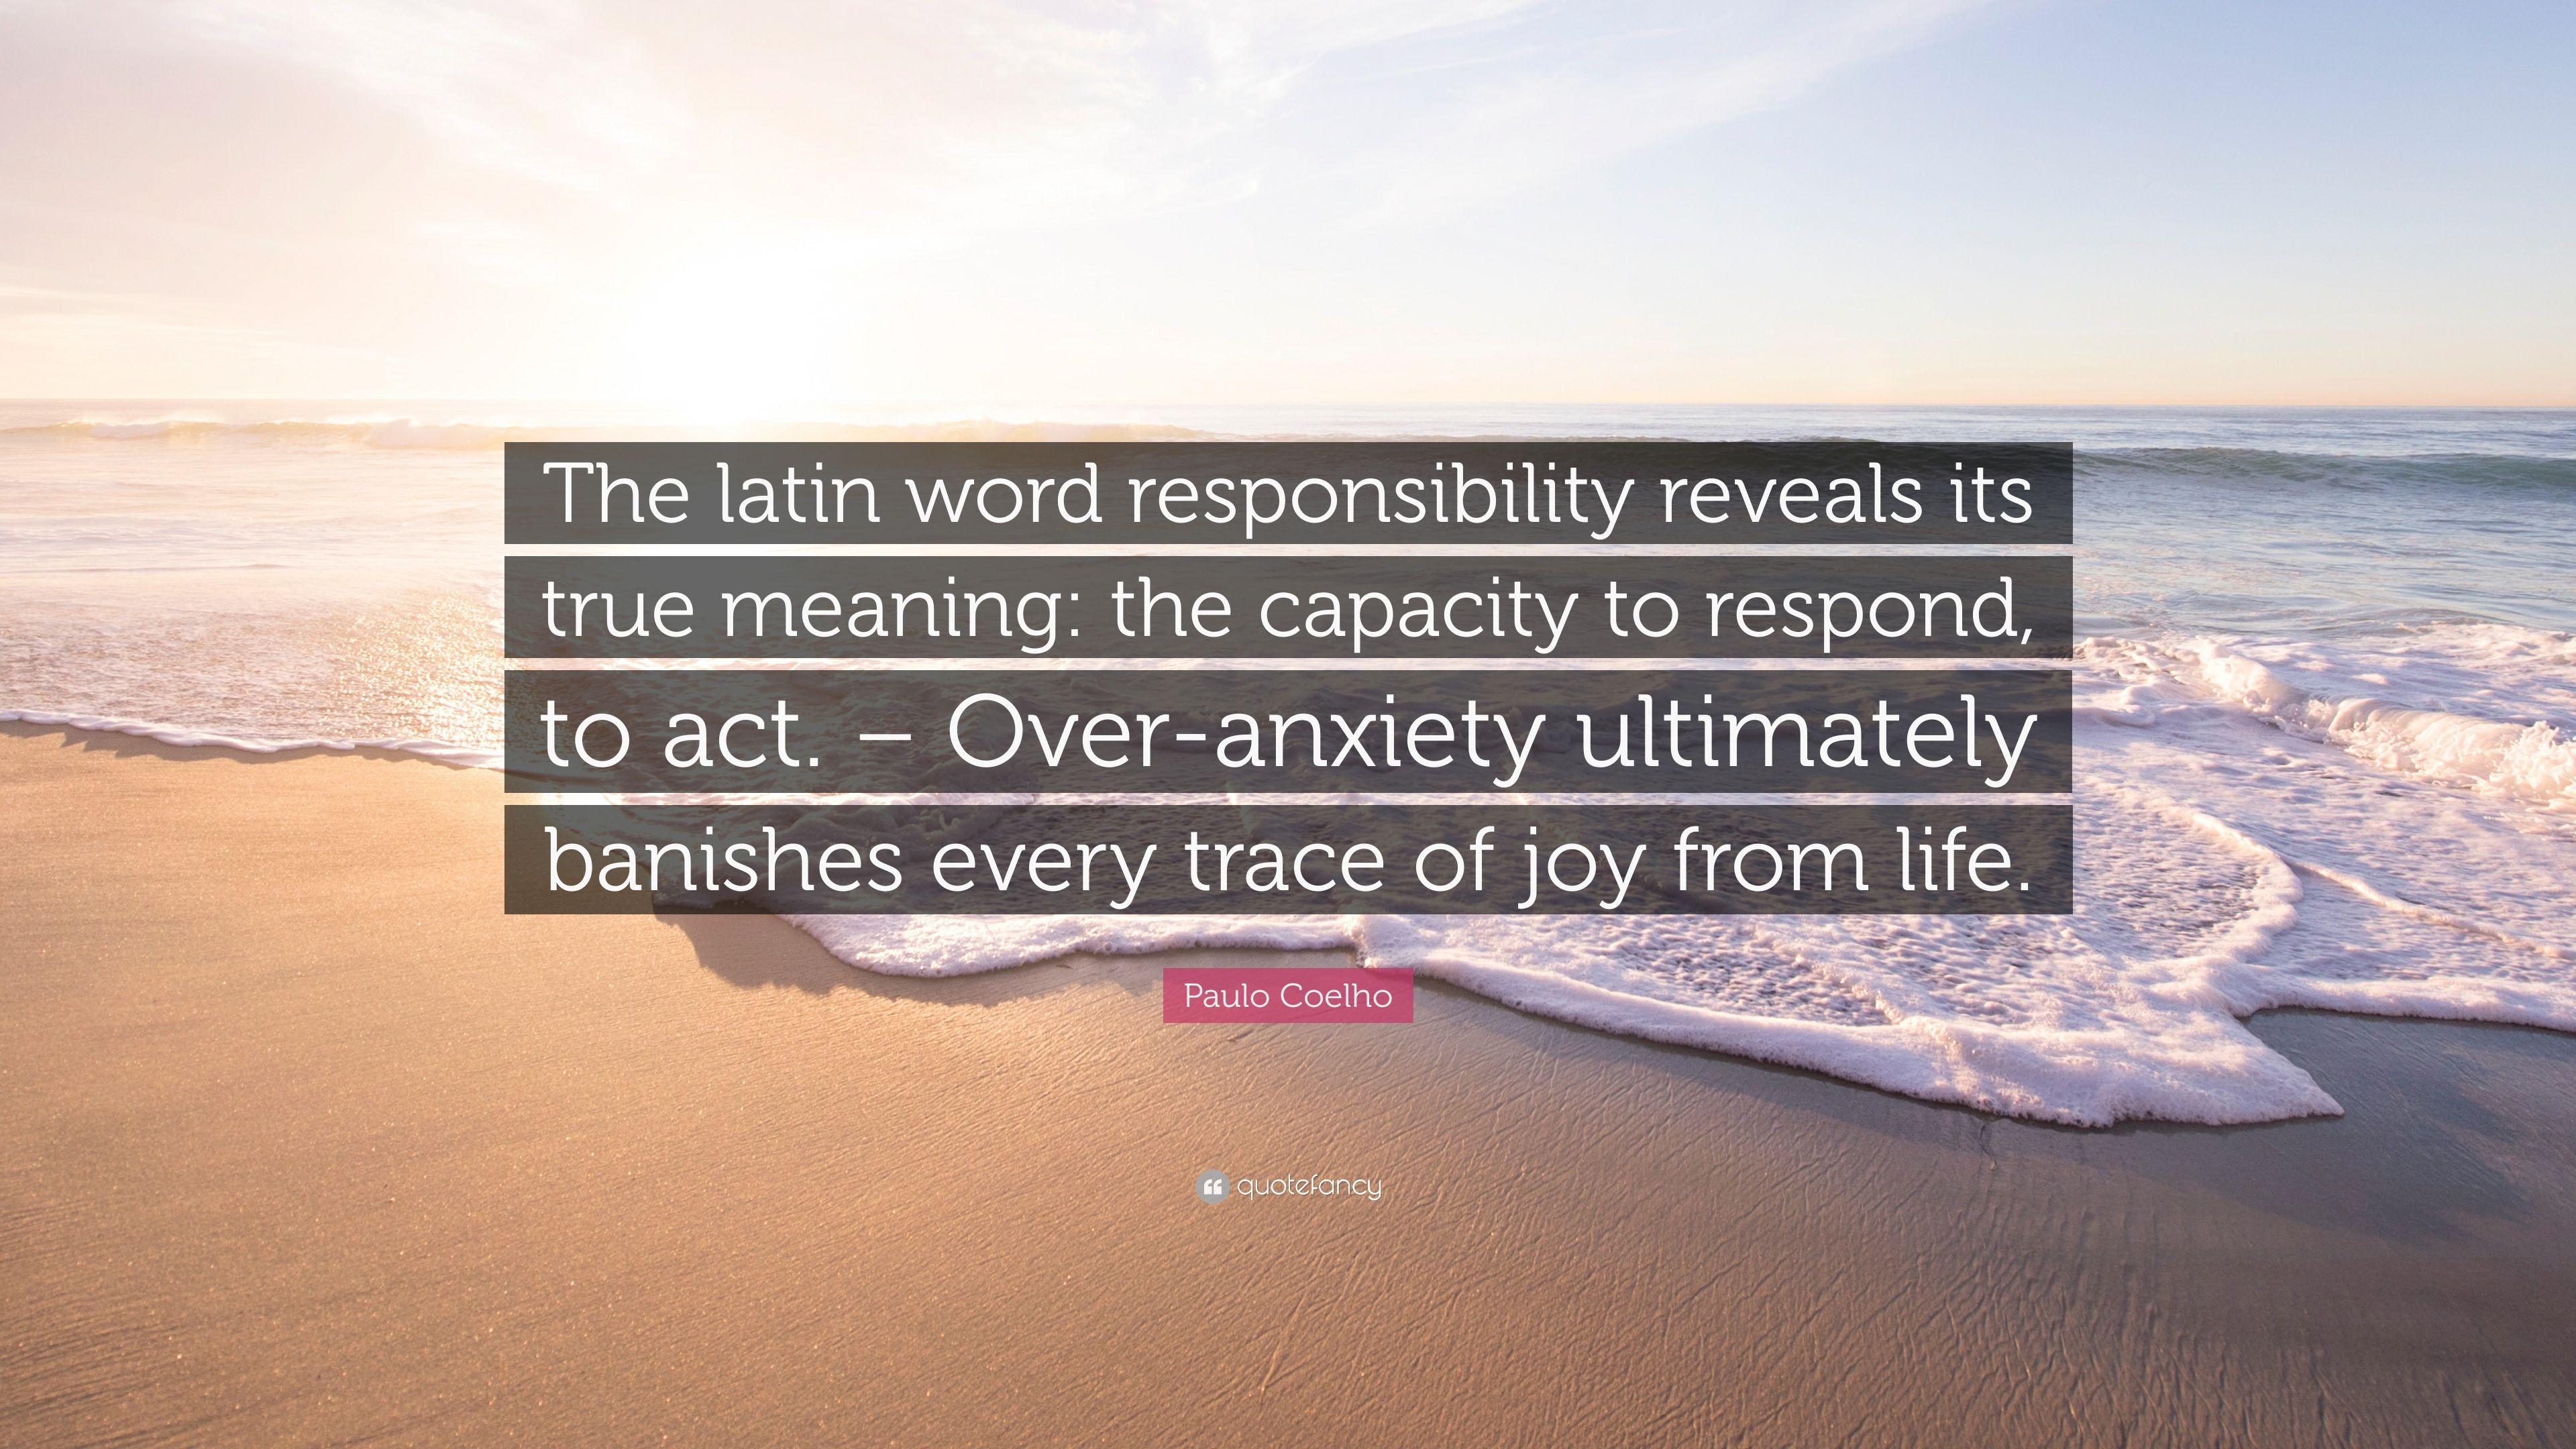 meaning of the word responsibility